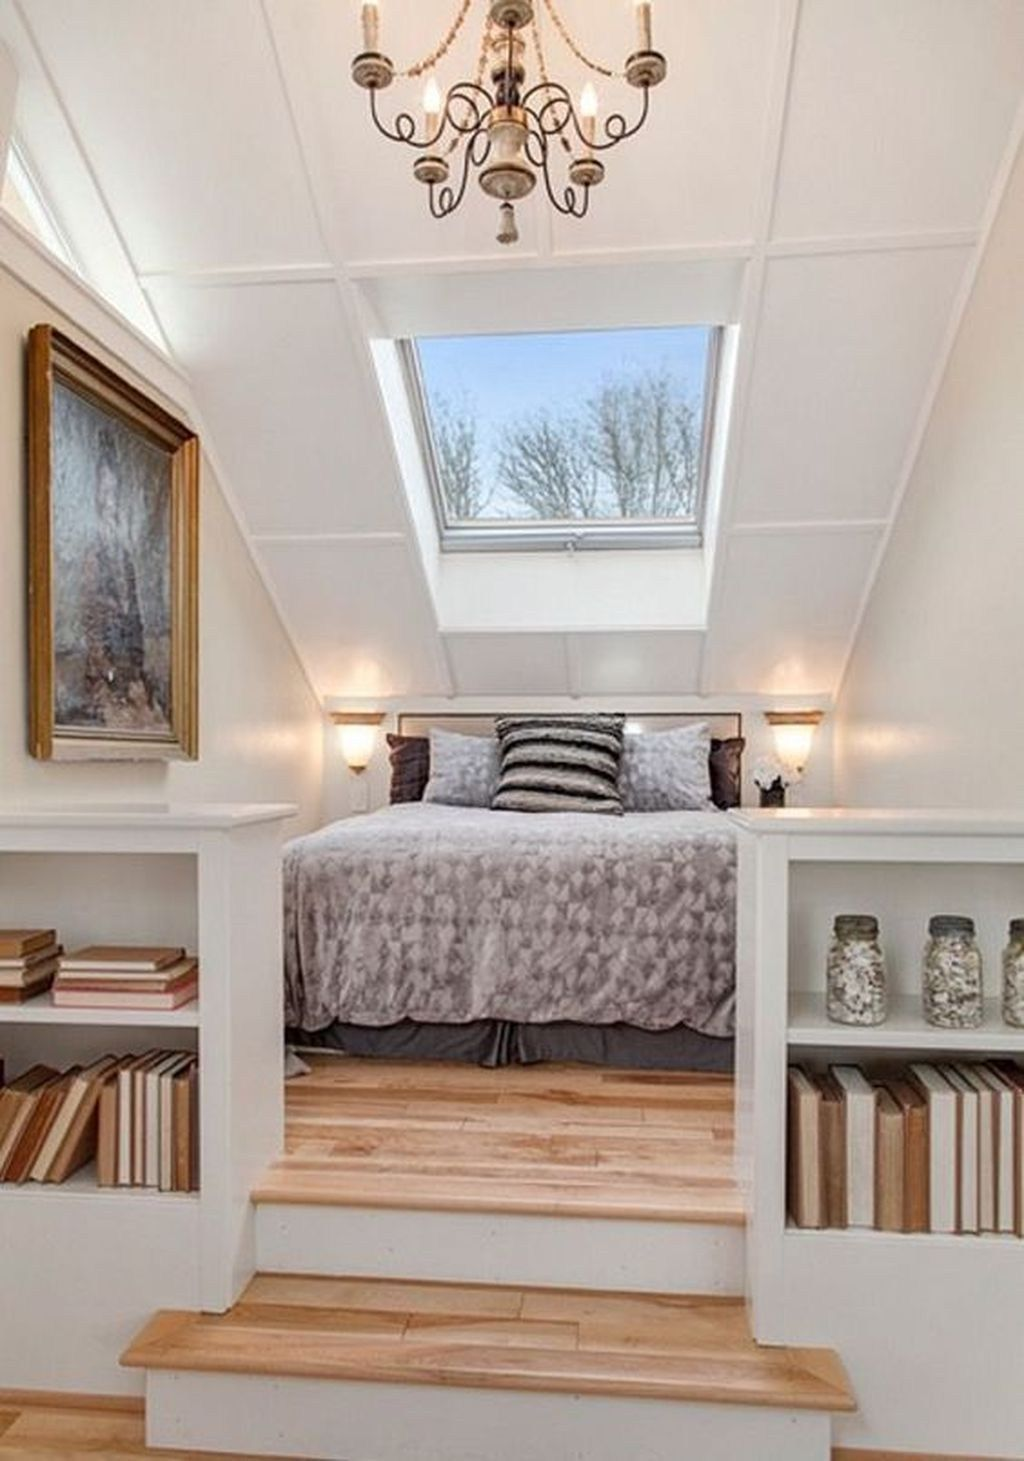 Best 11 Incredible Attic Rooms Modern Ideas In 2020 Attic 400 x 300